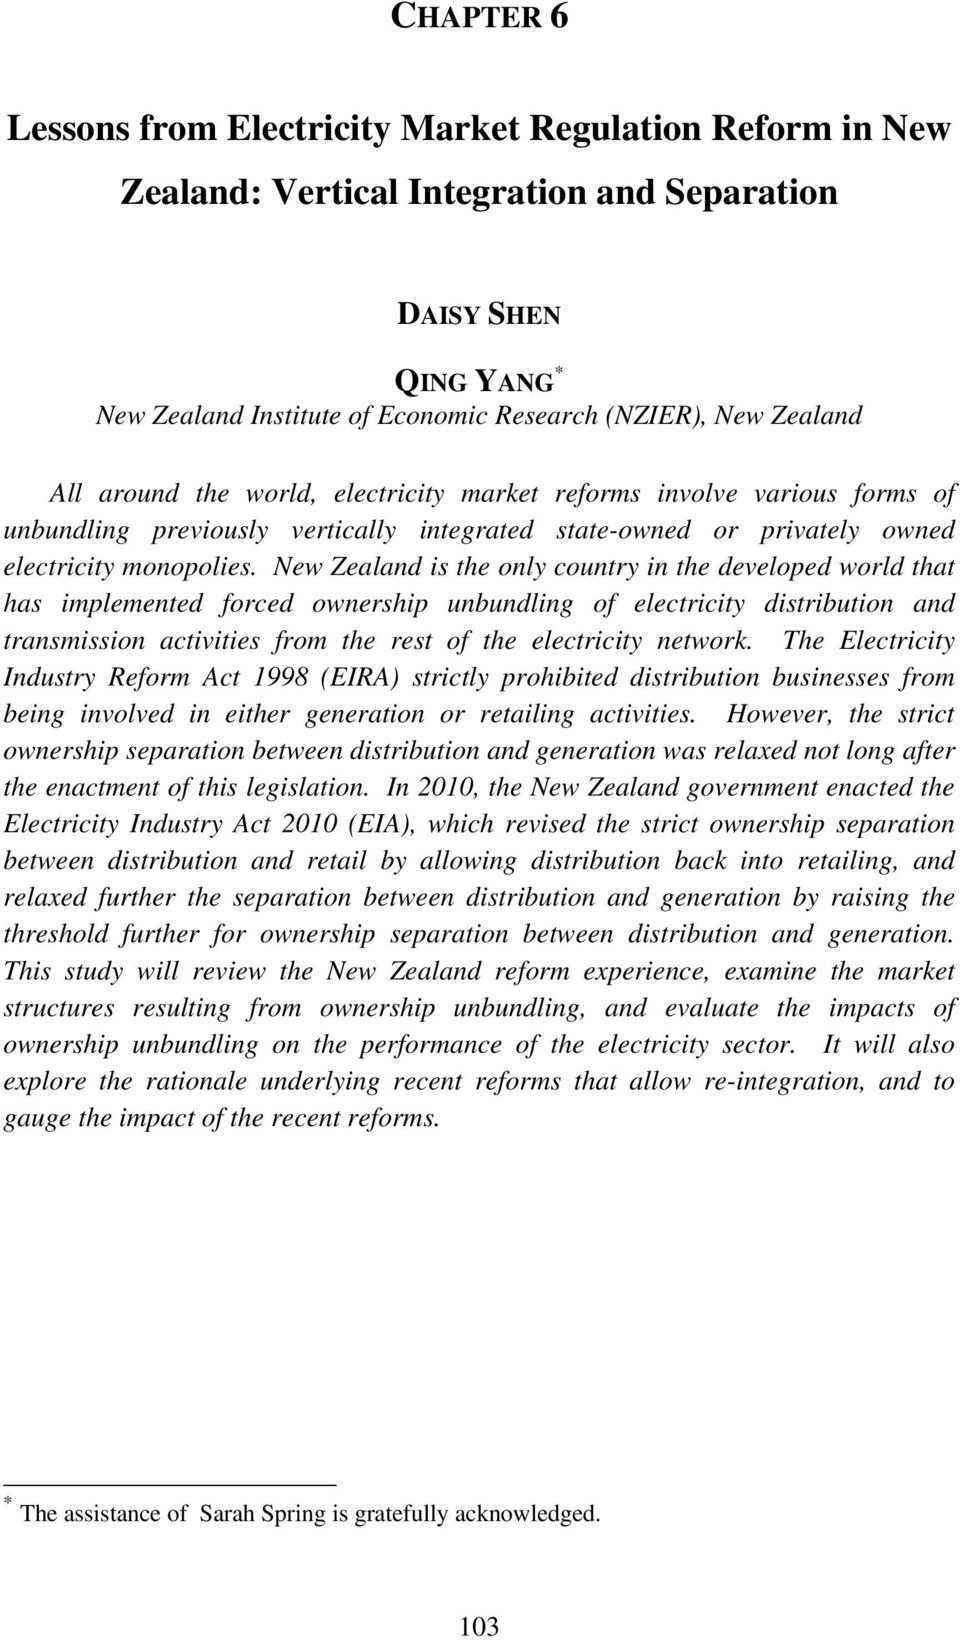 New Zealand is the only country in the developed world that has implemented forced ownership unbundling of electricity distribution and transmission activities from the rest of the electricity